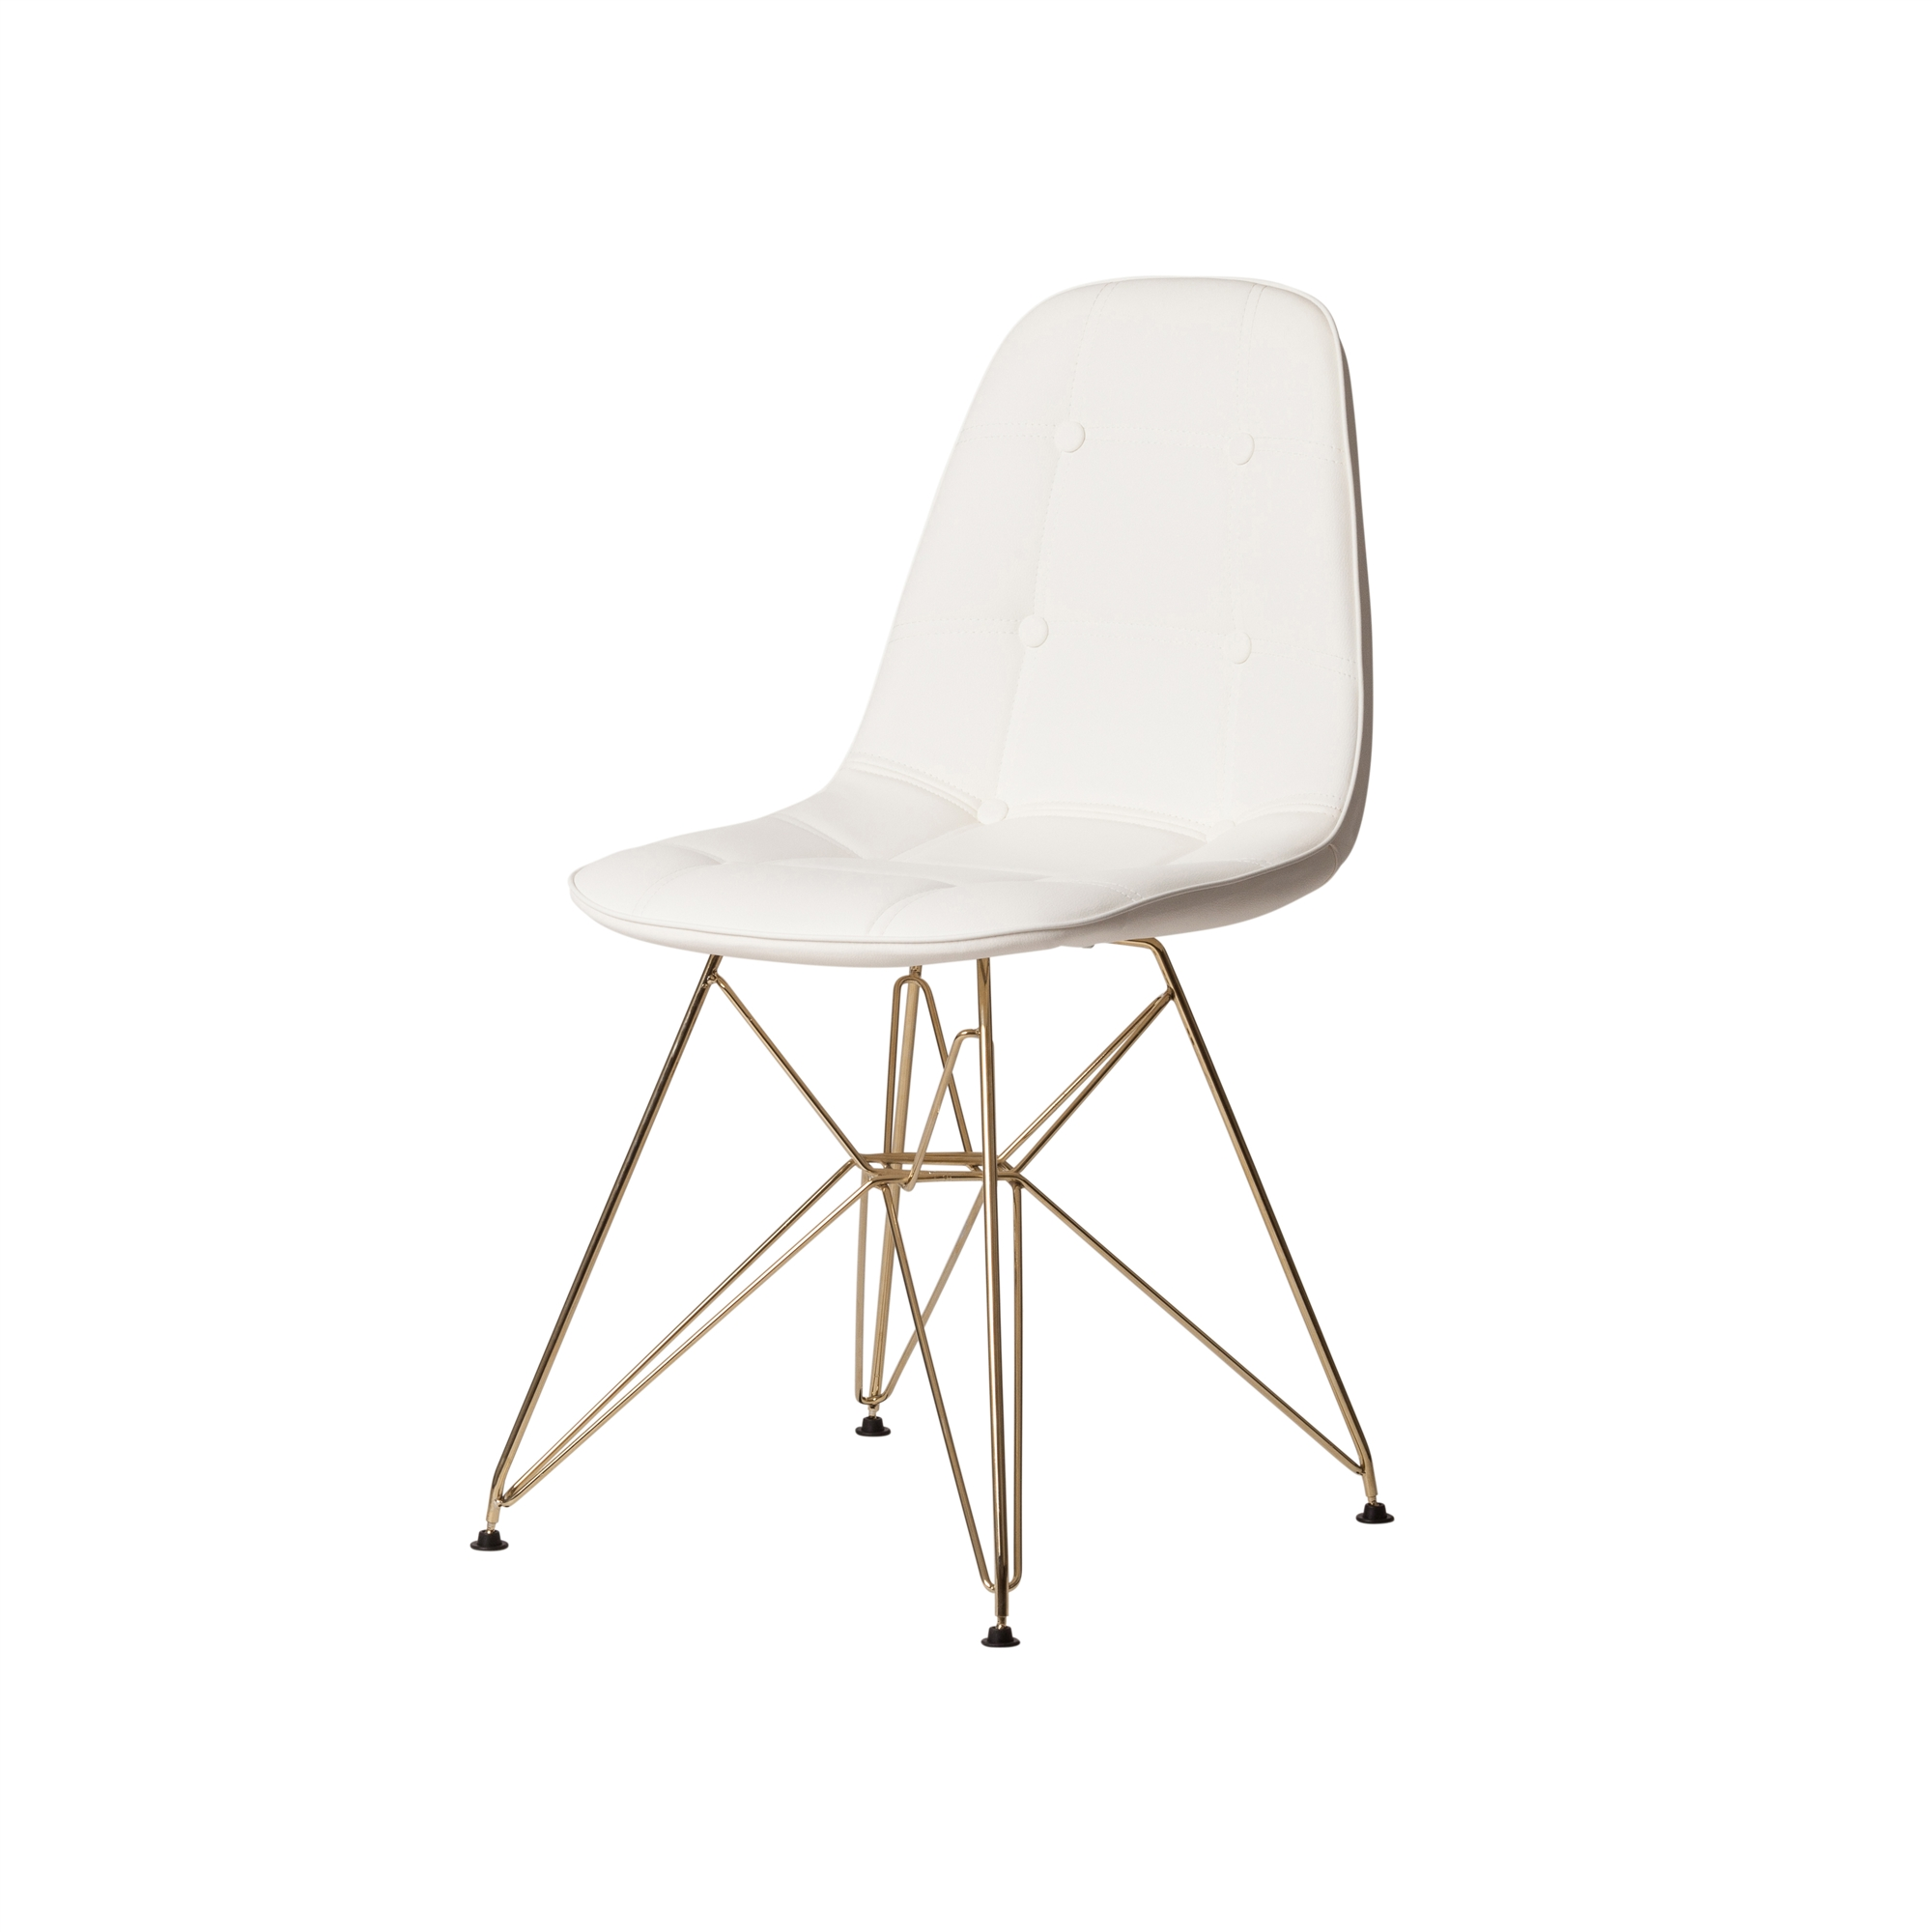 Eames Eiffel Dsr Style White Leather Side Chair With Gold Legs